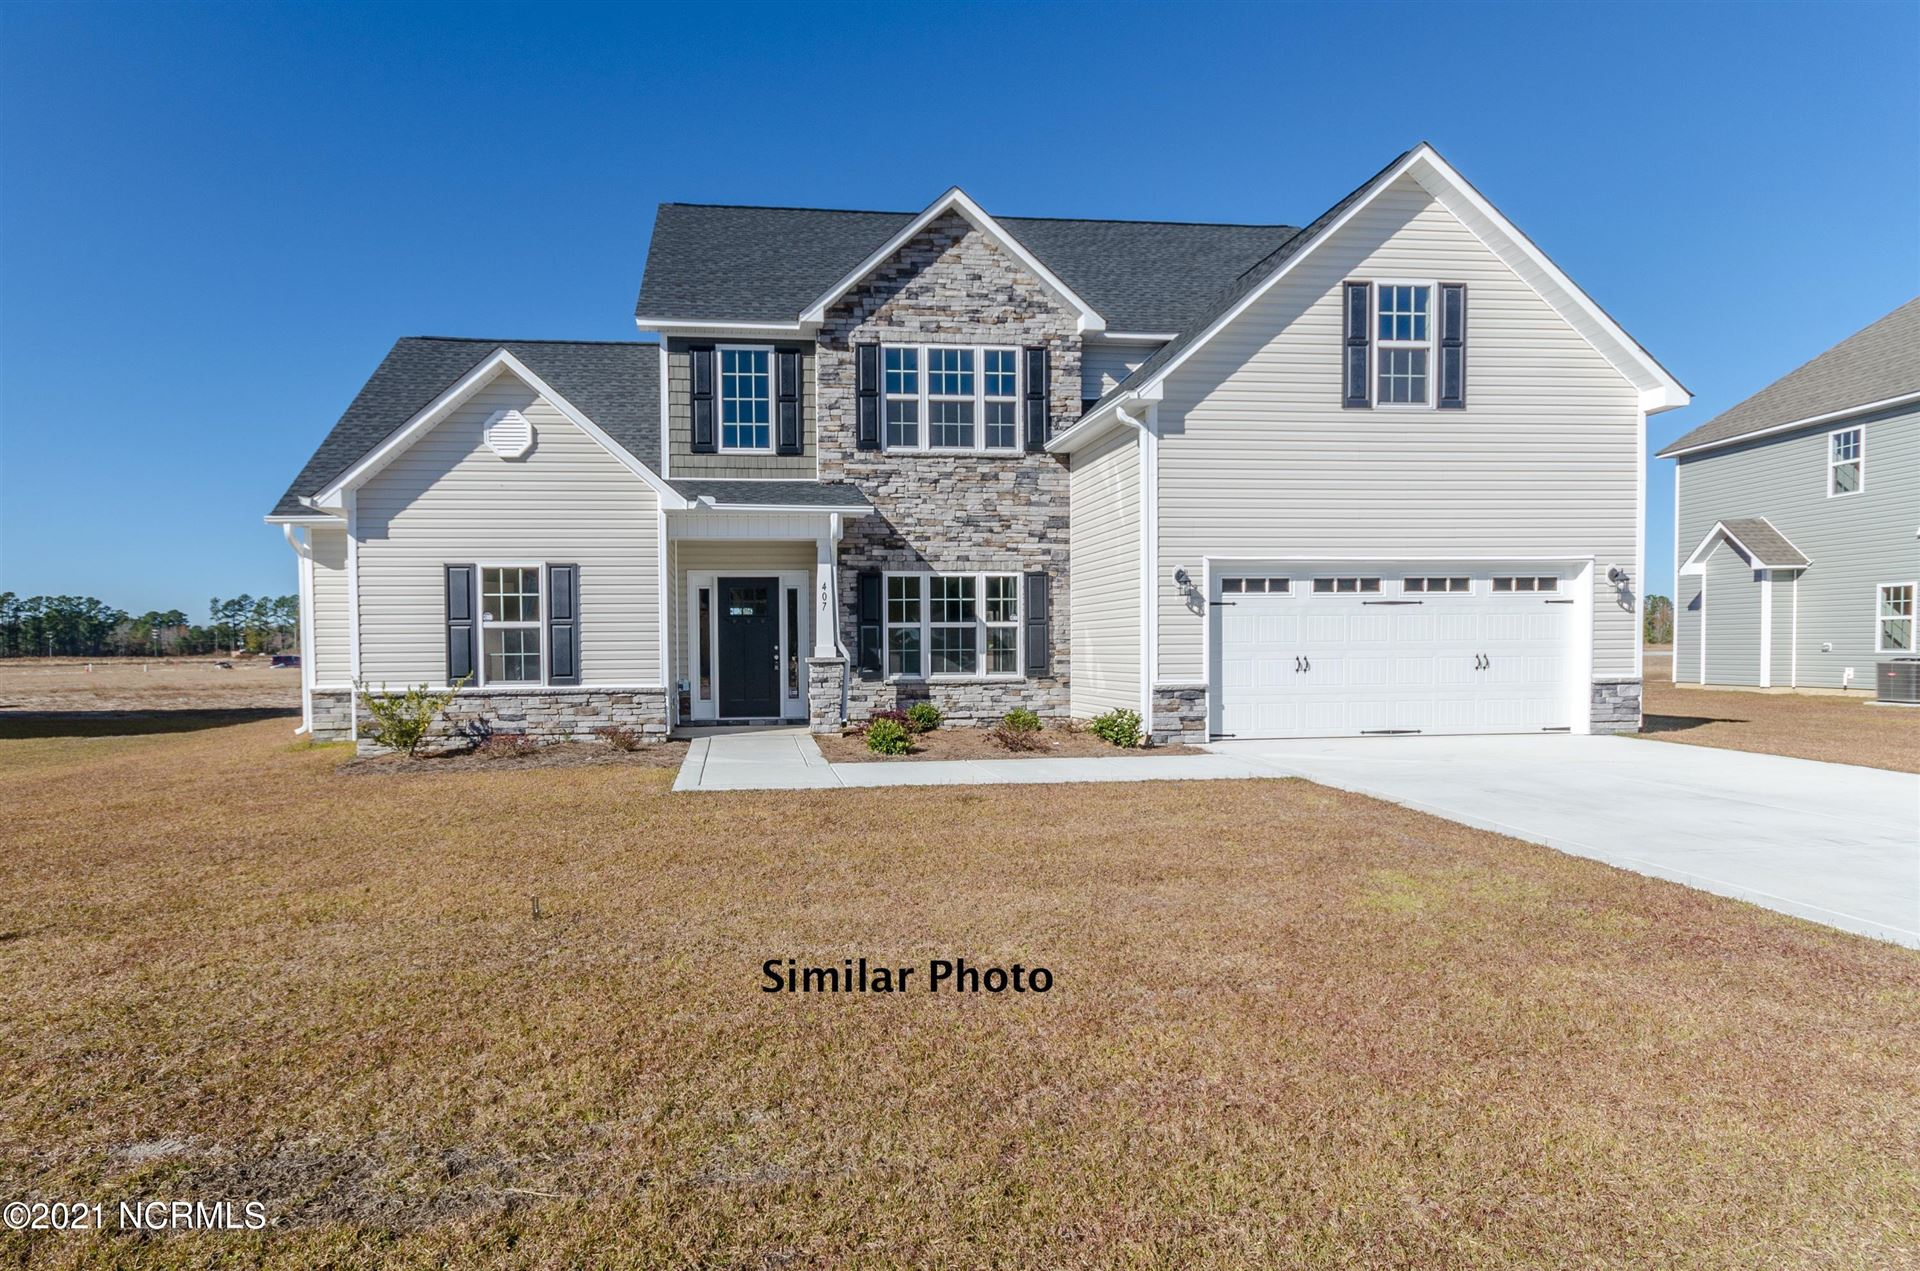 Photo for 334 Naval Store Drive, Jacksonville, NC 28546 (MLS # 100272589)